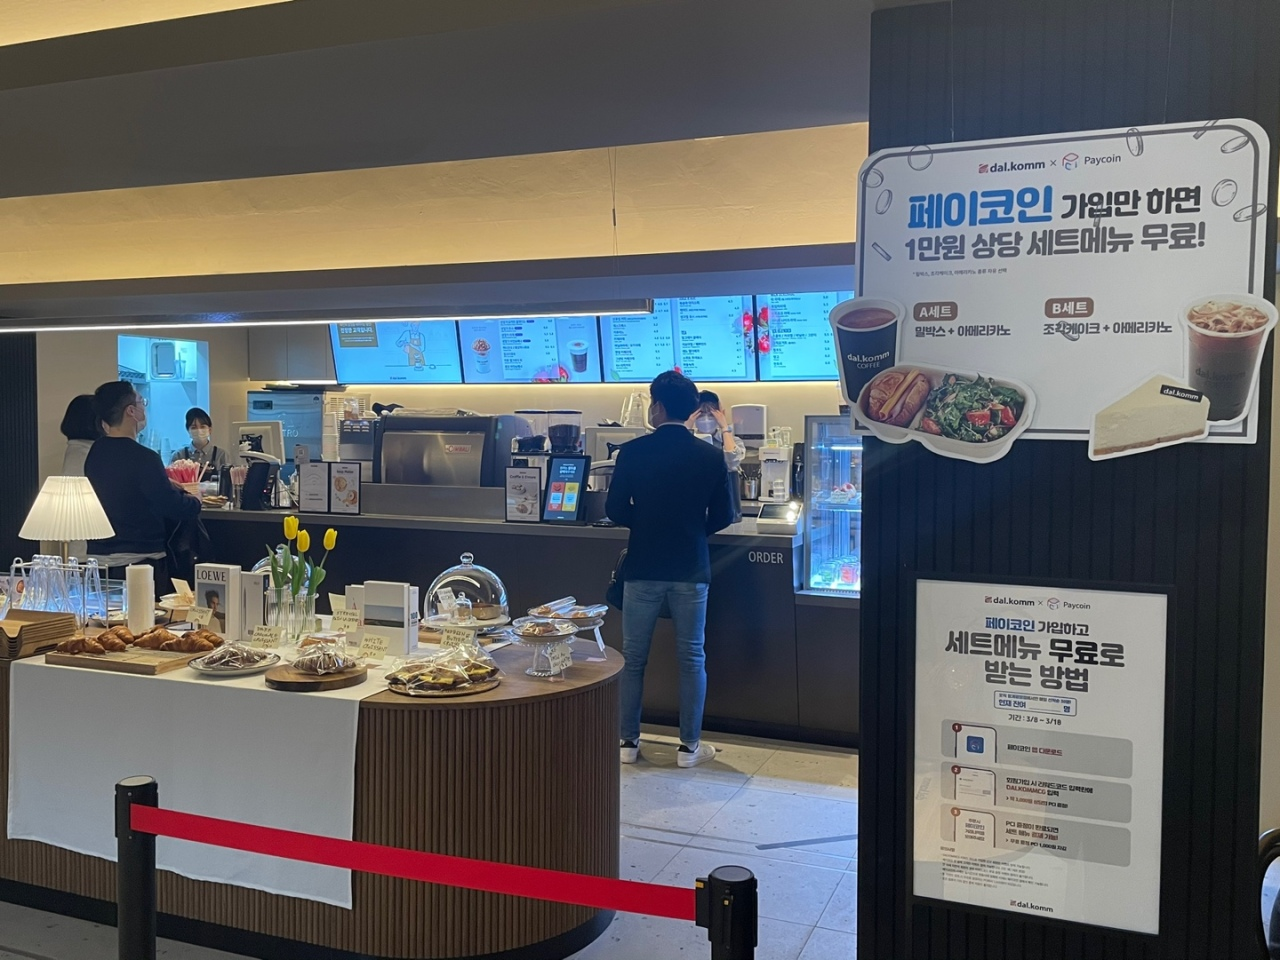 The cafe is one of 60,000 stores that accept the digital token Paycoin, developed by Danal Fintech. (Park Ga-young/The Korea Herald)